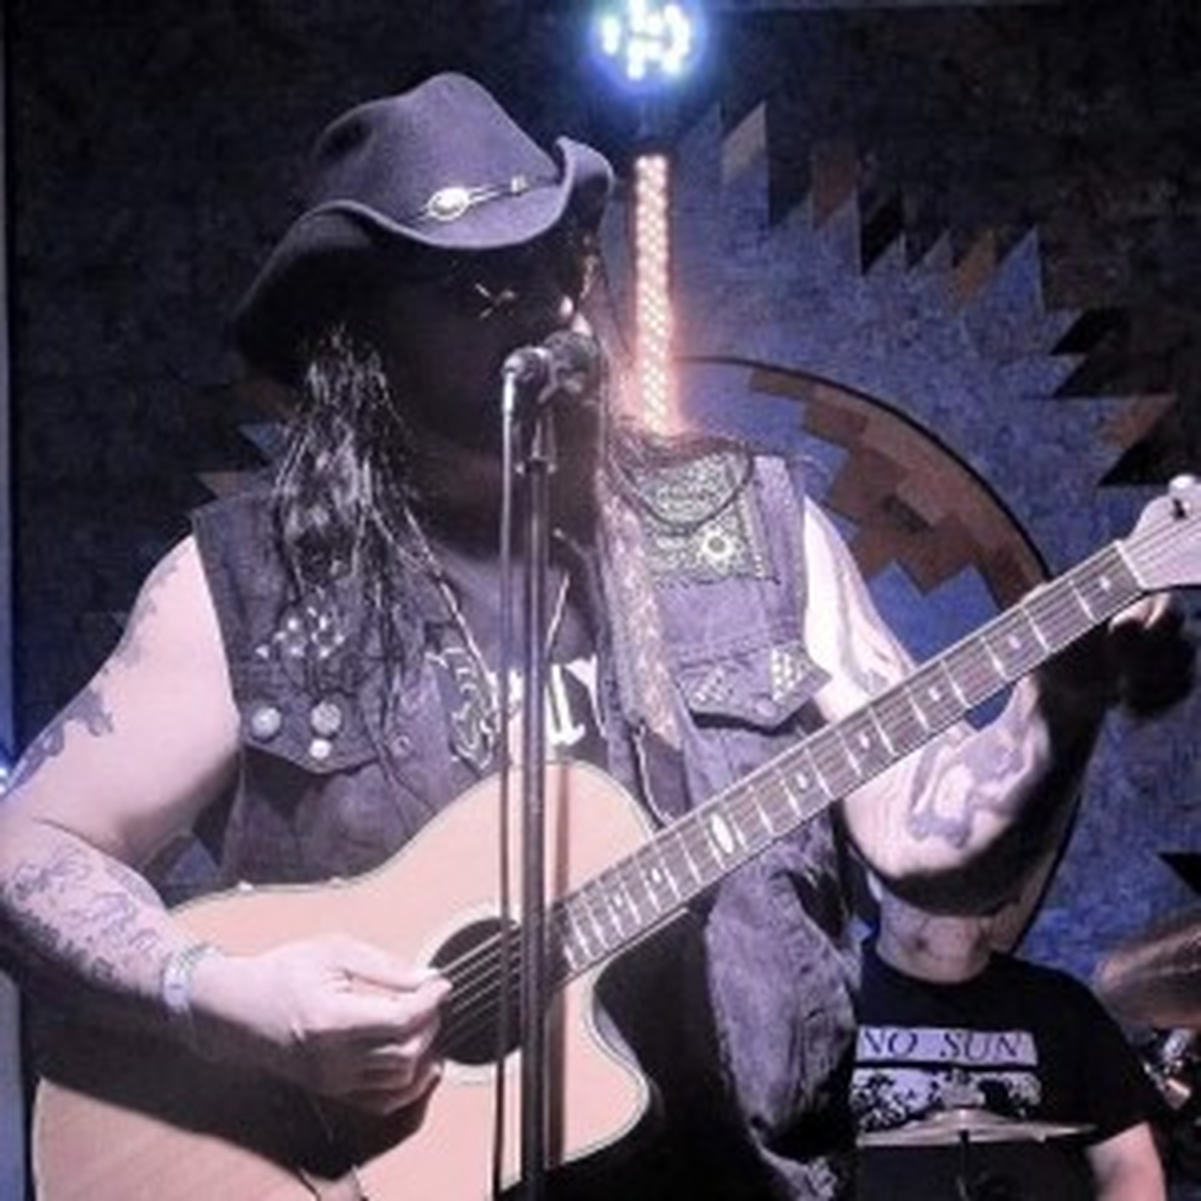 The Raven Cain Band